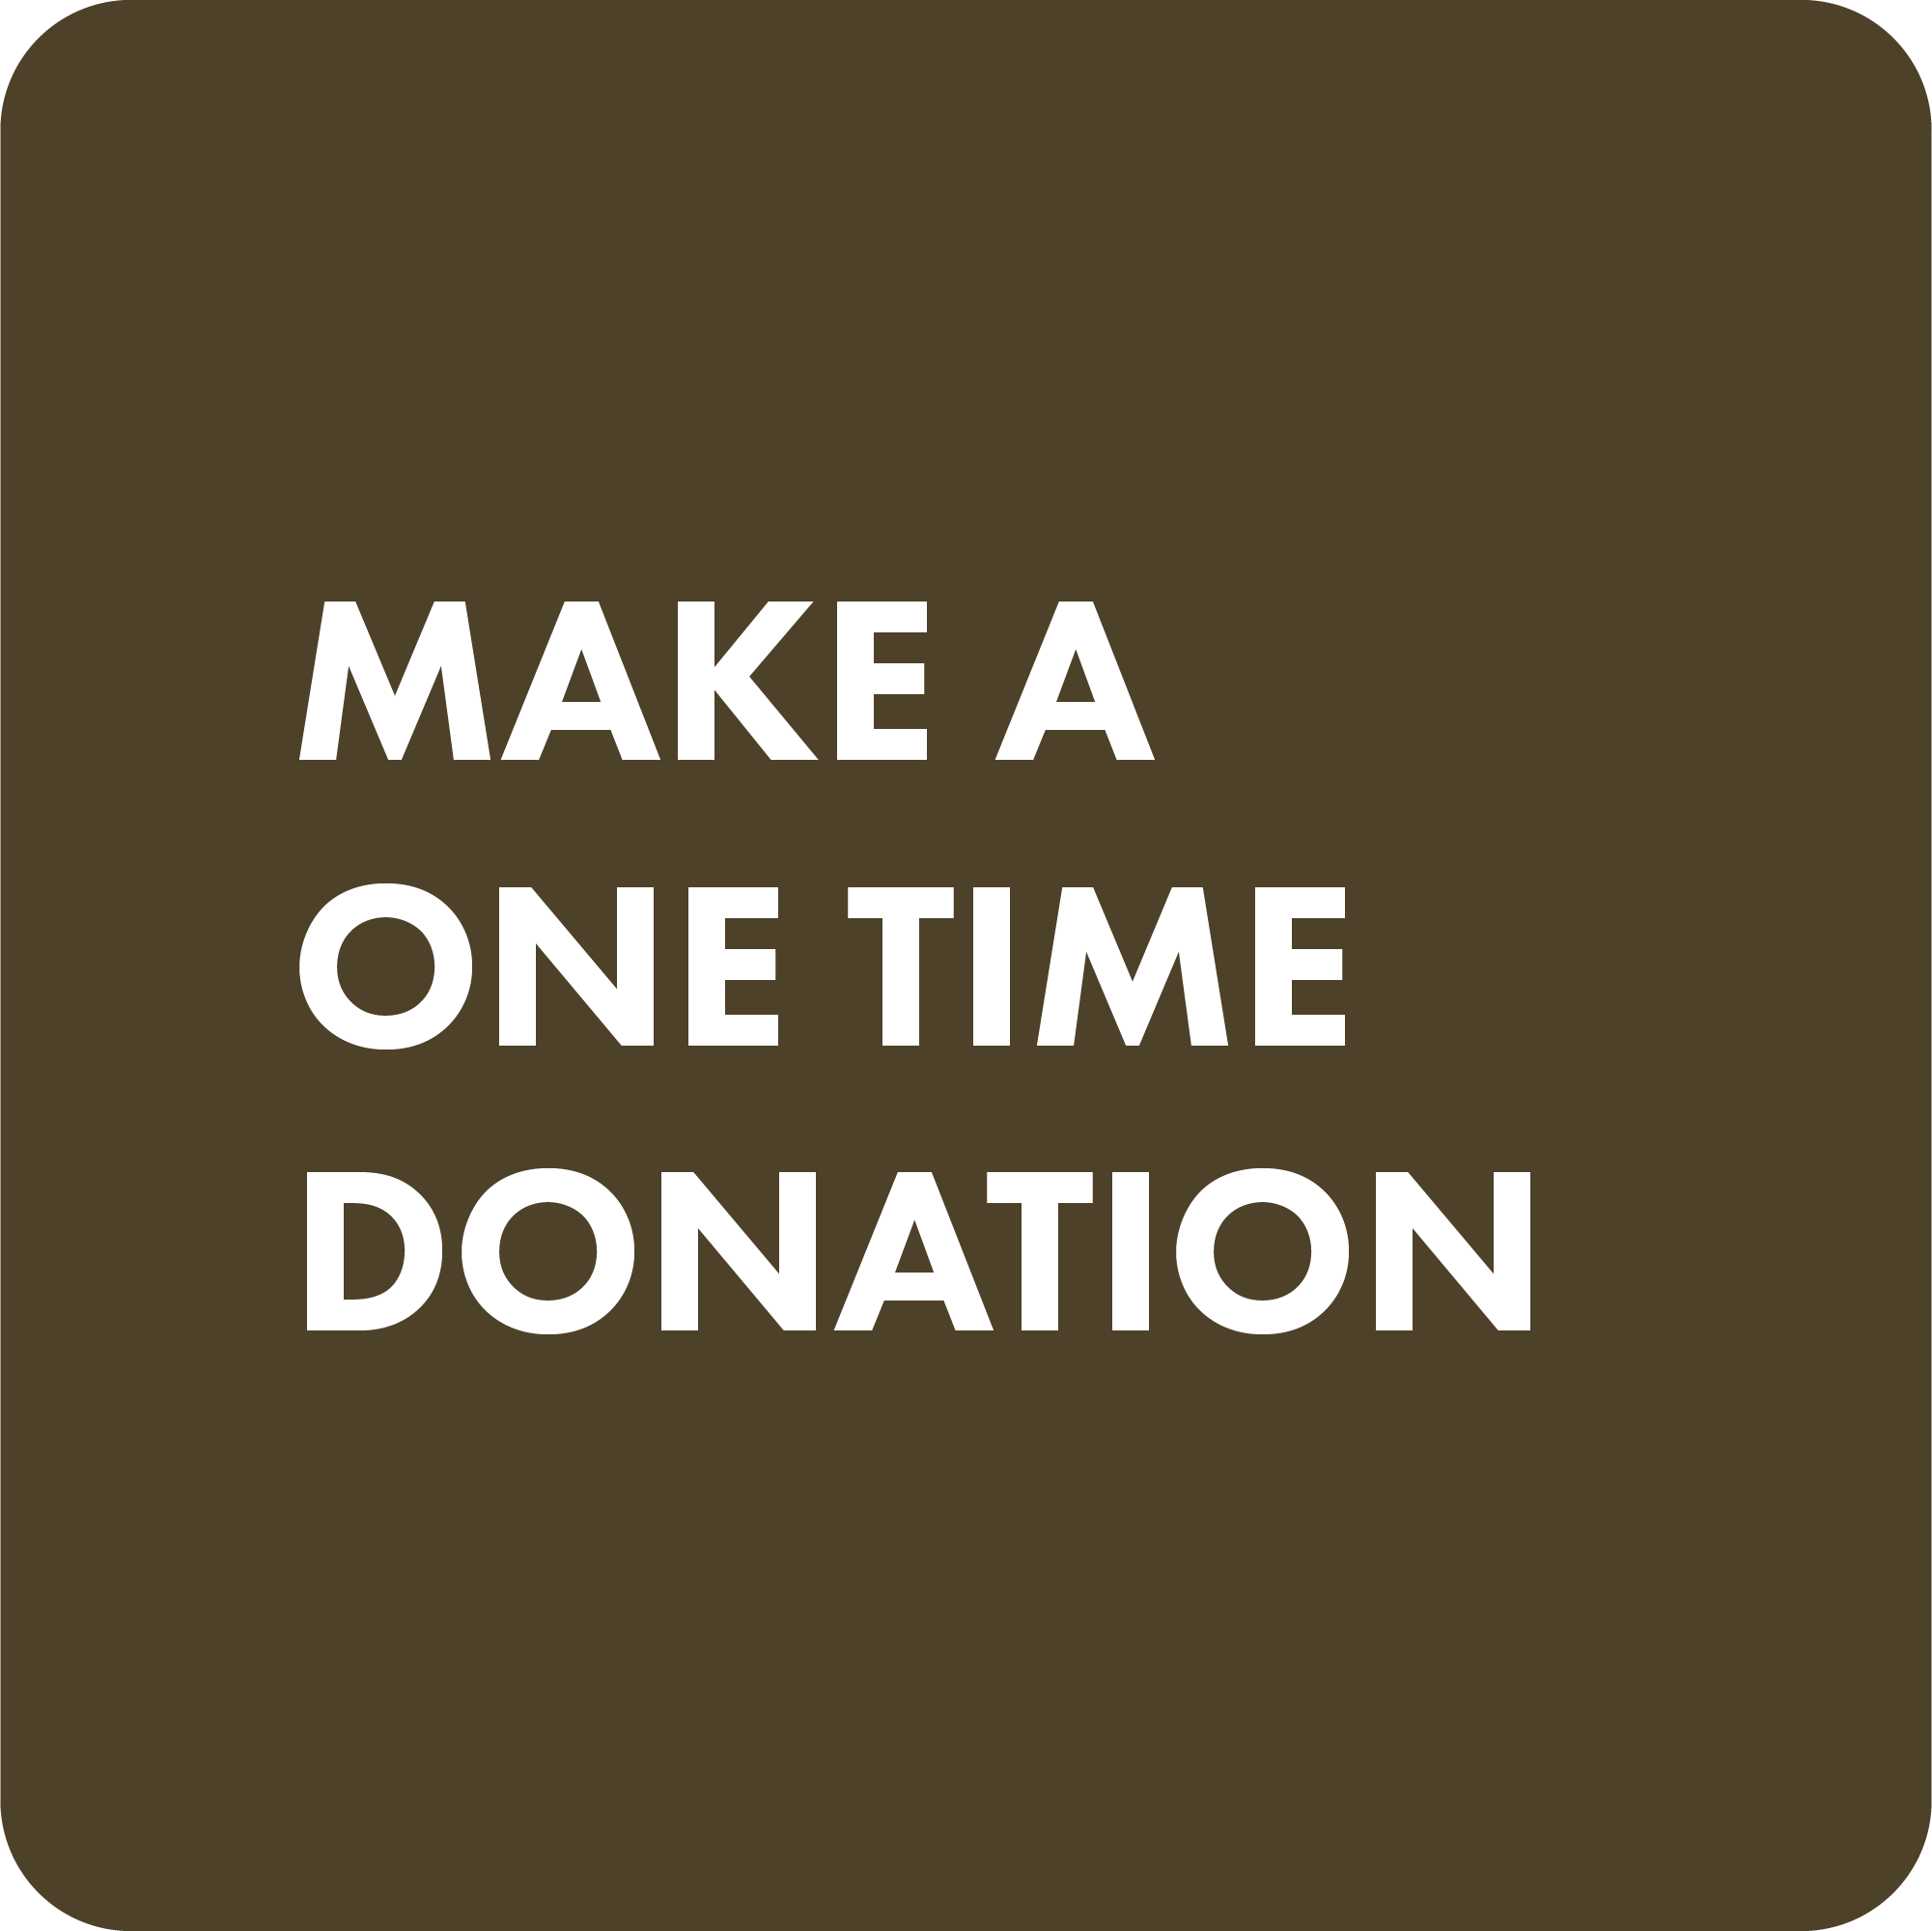 Make a One Time Donation.png